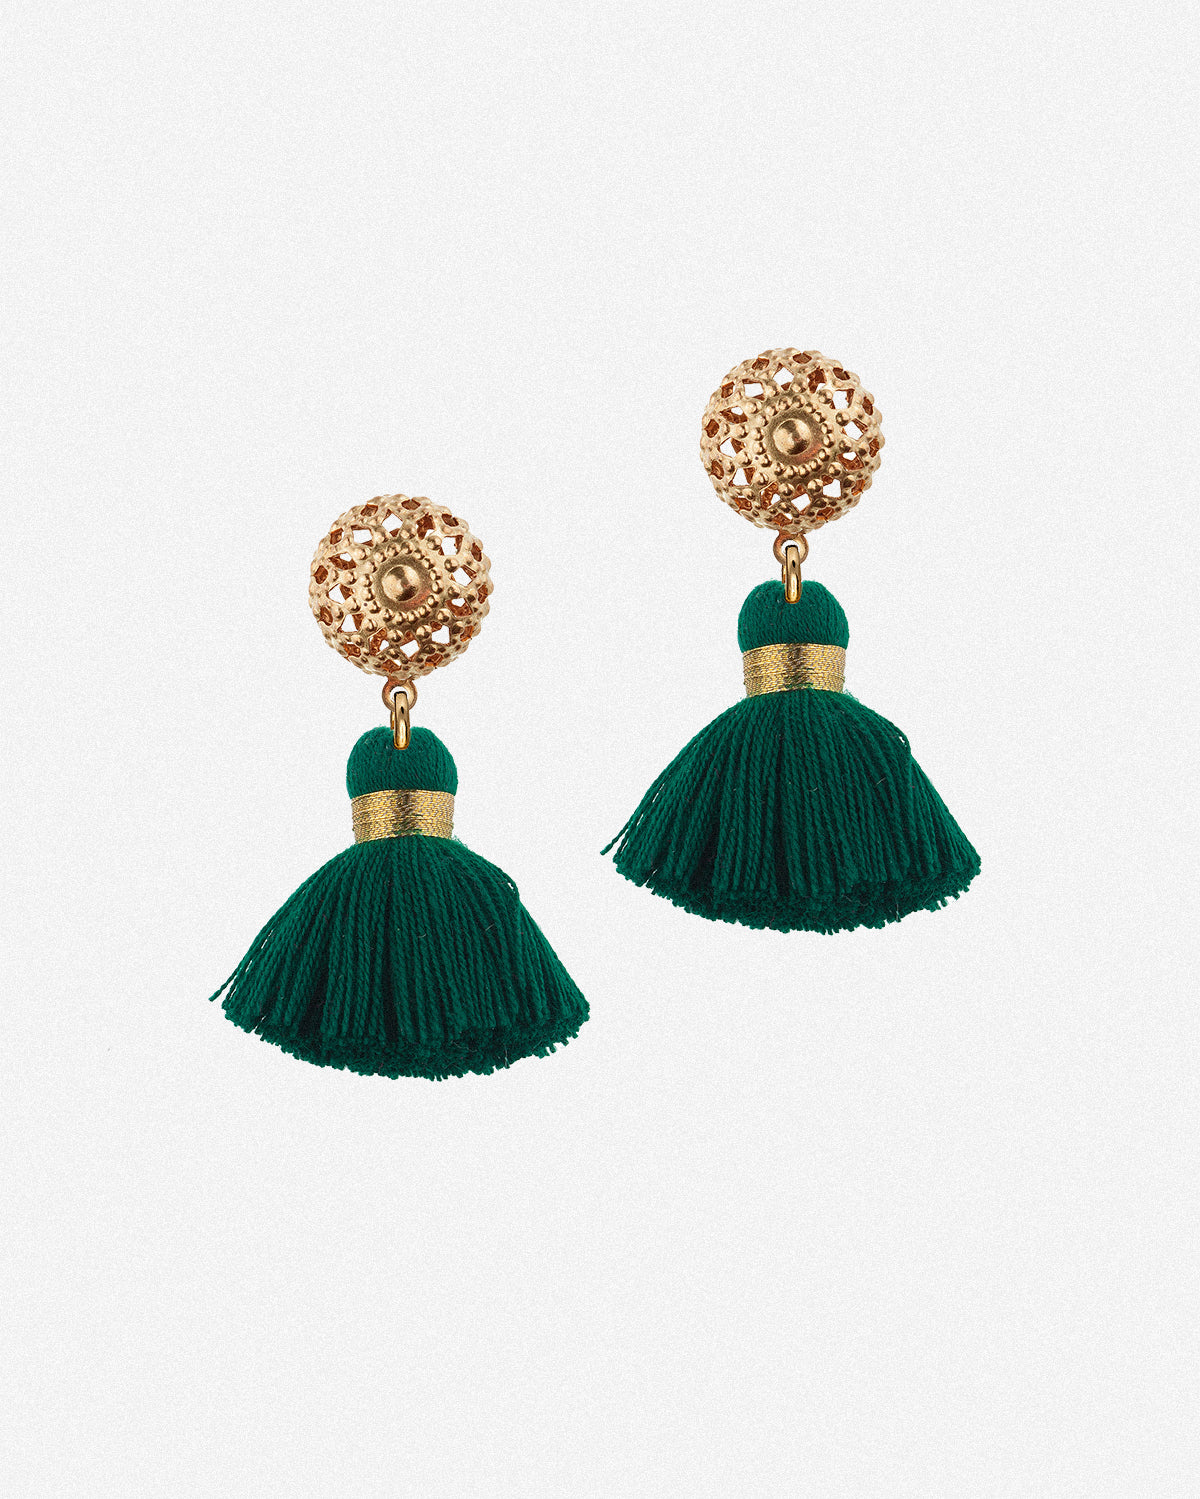 Image of Emmeline Mini Tassel Earrings - Emerald